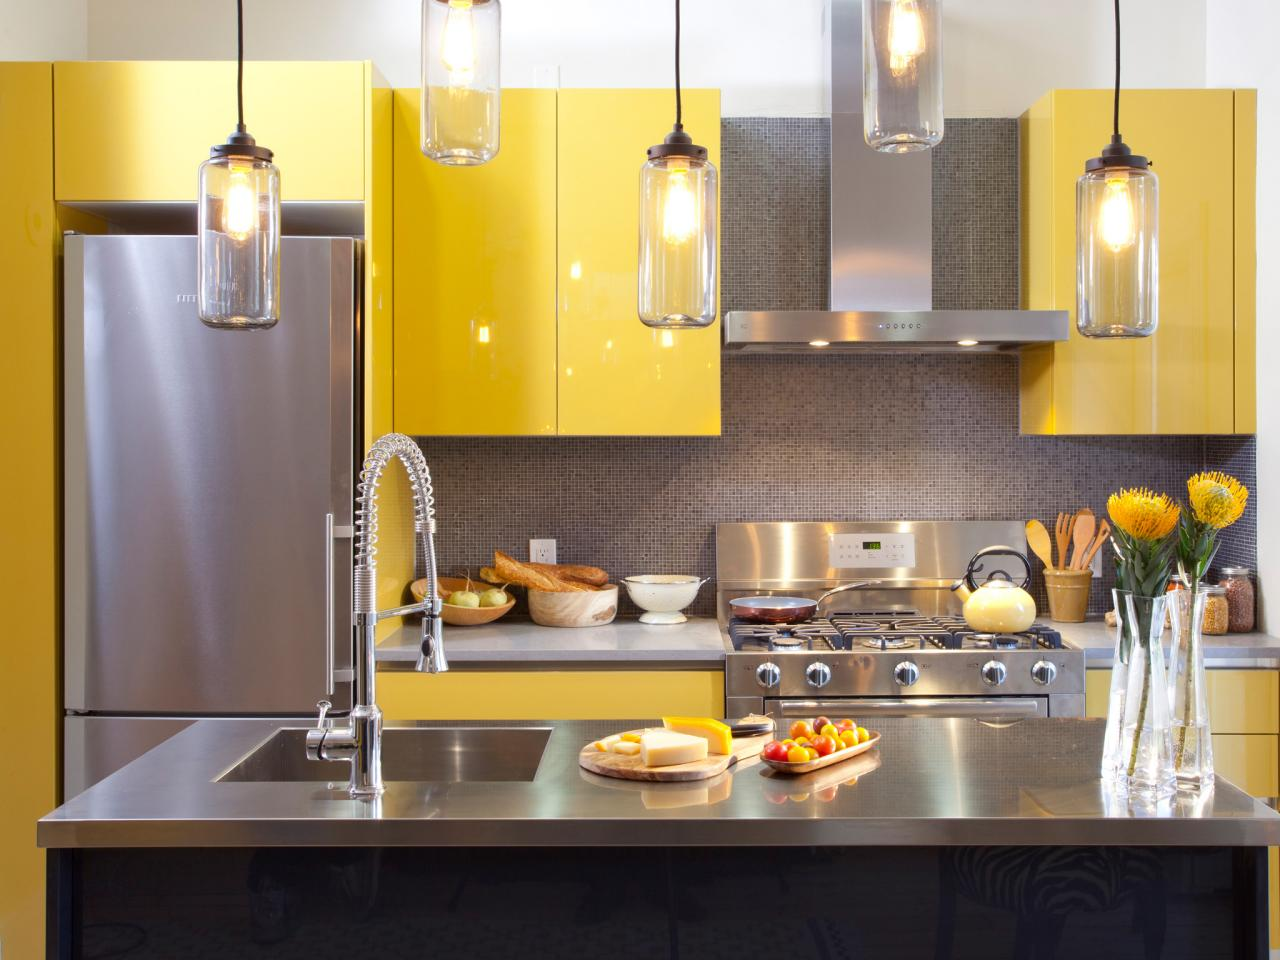 Innovative Solutions For Small Kitchens